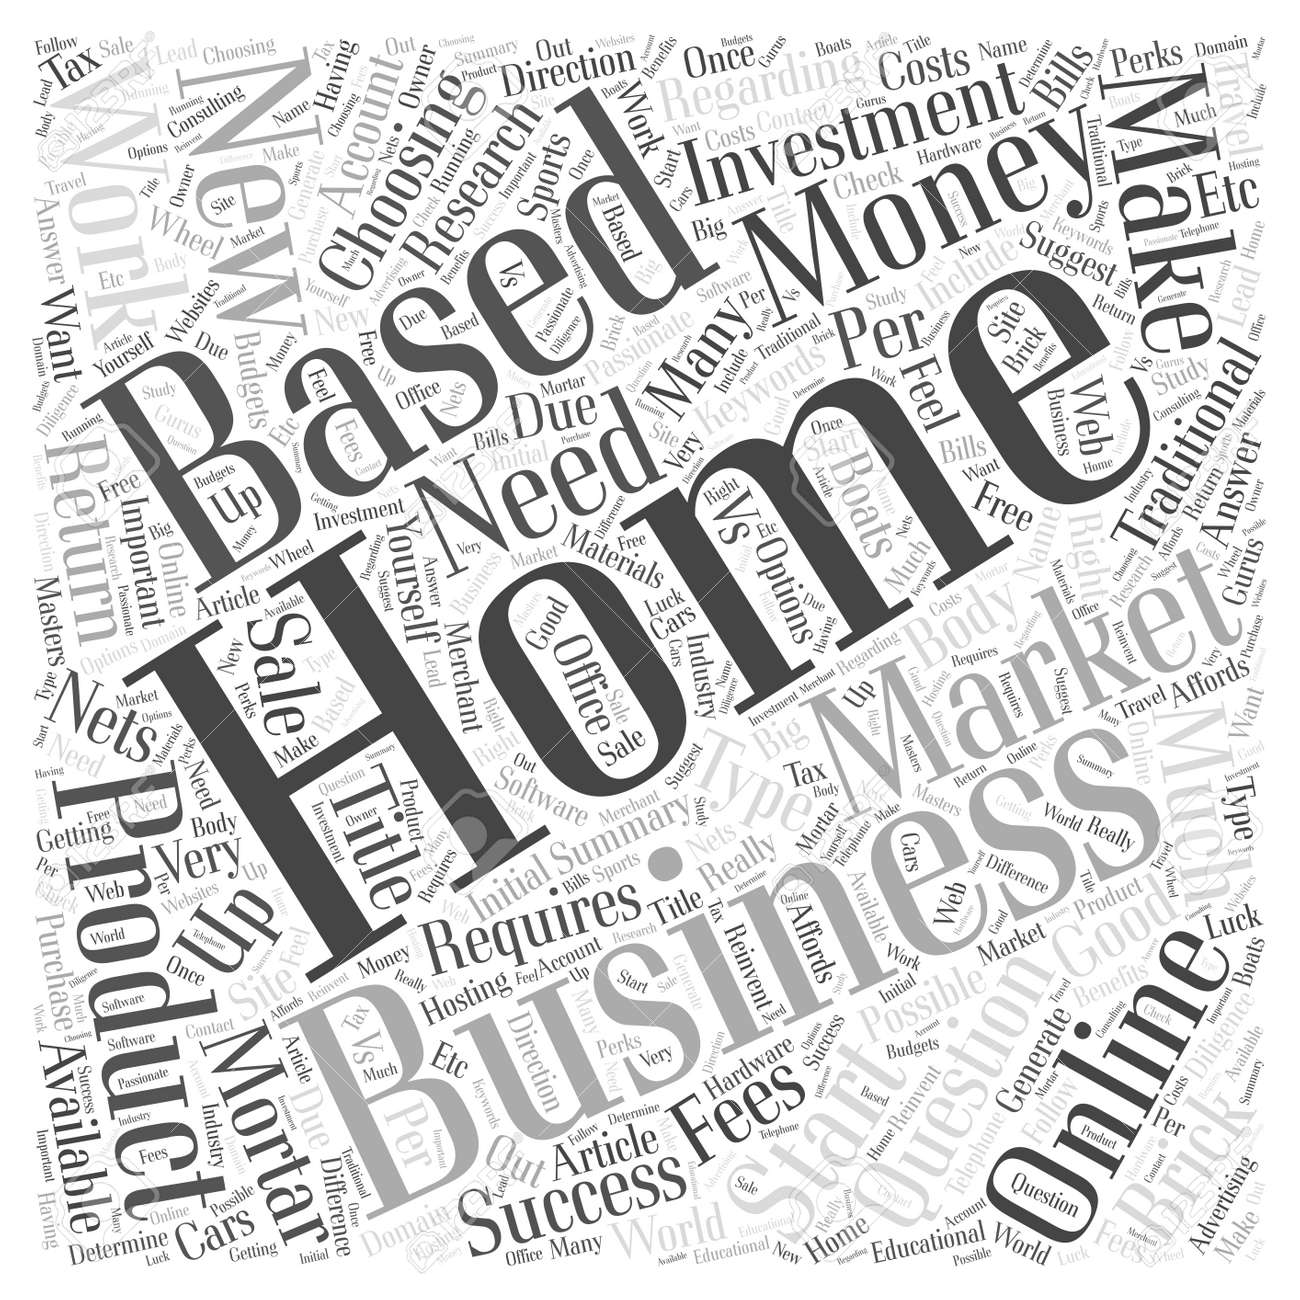 How to work from home and make money online word cloud concept